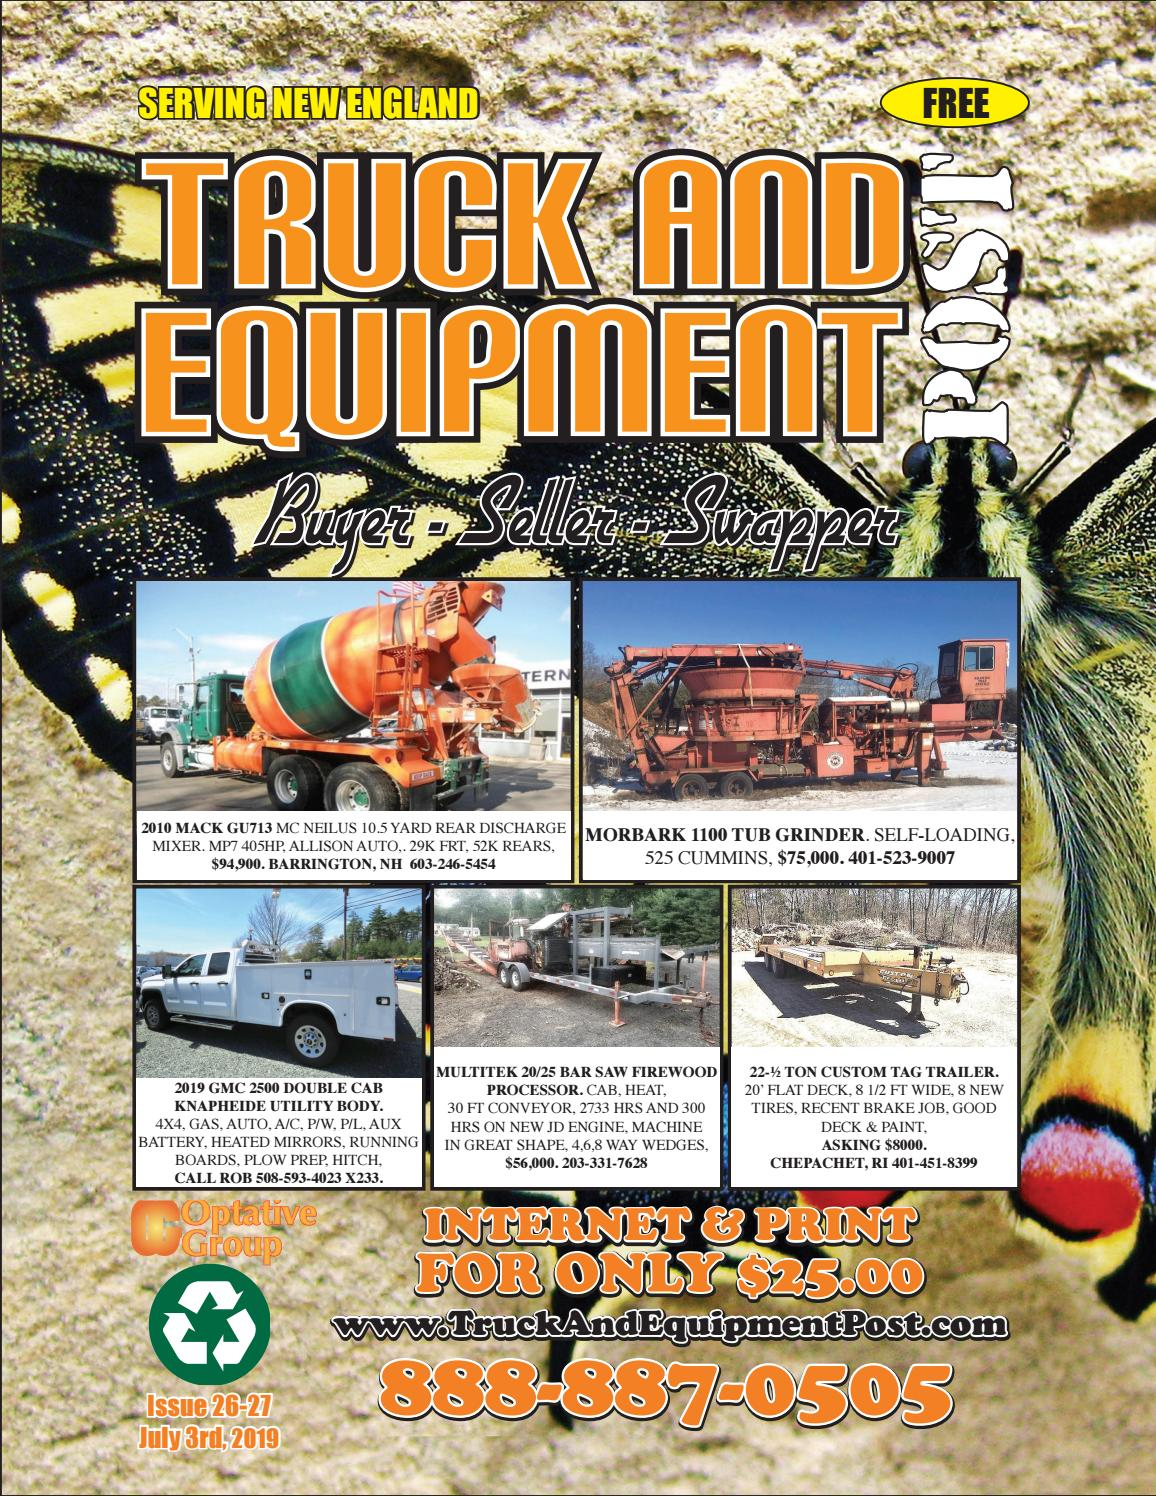 Truck And Equipment Post - Issue 26-27, 2019 by 1ClickAway